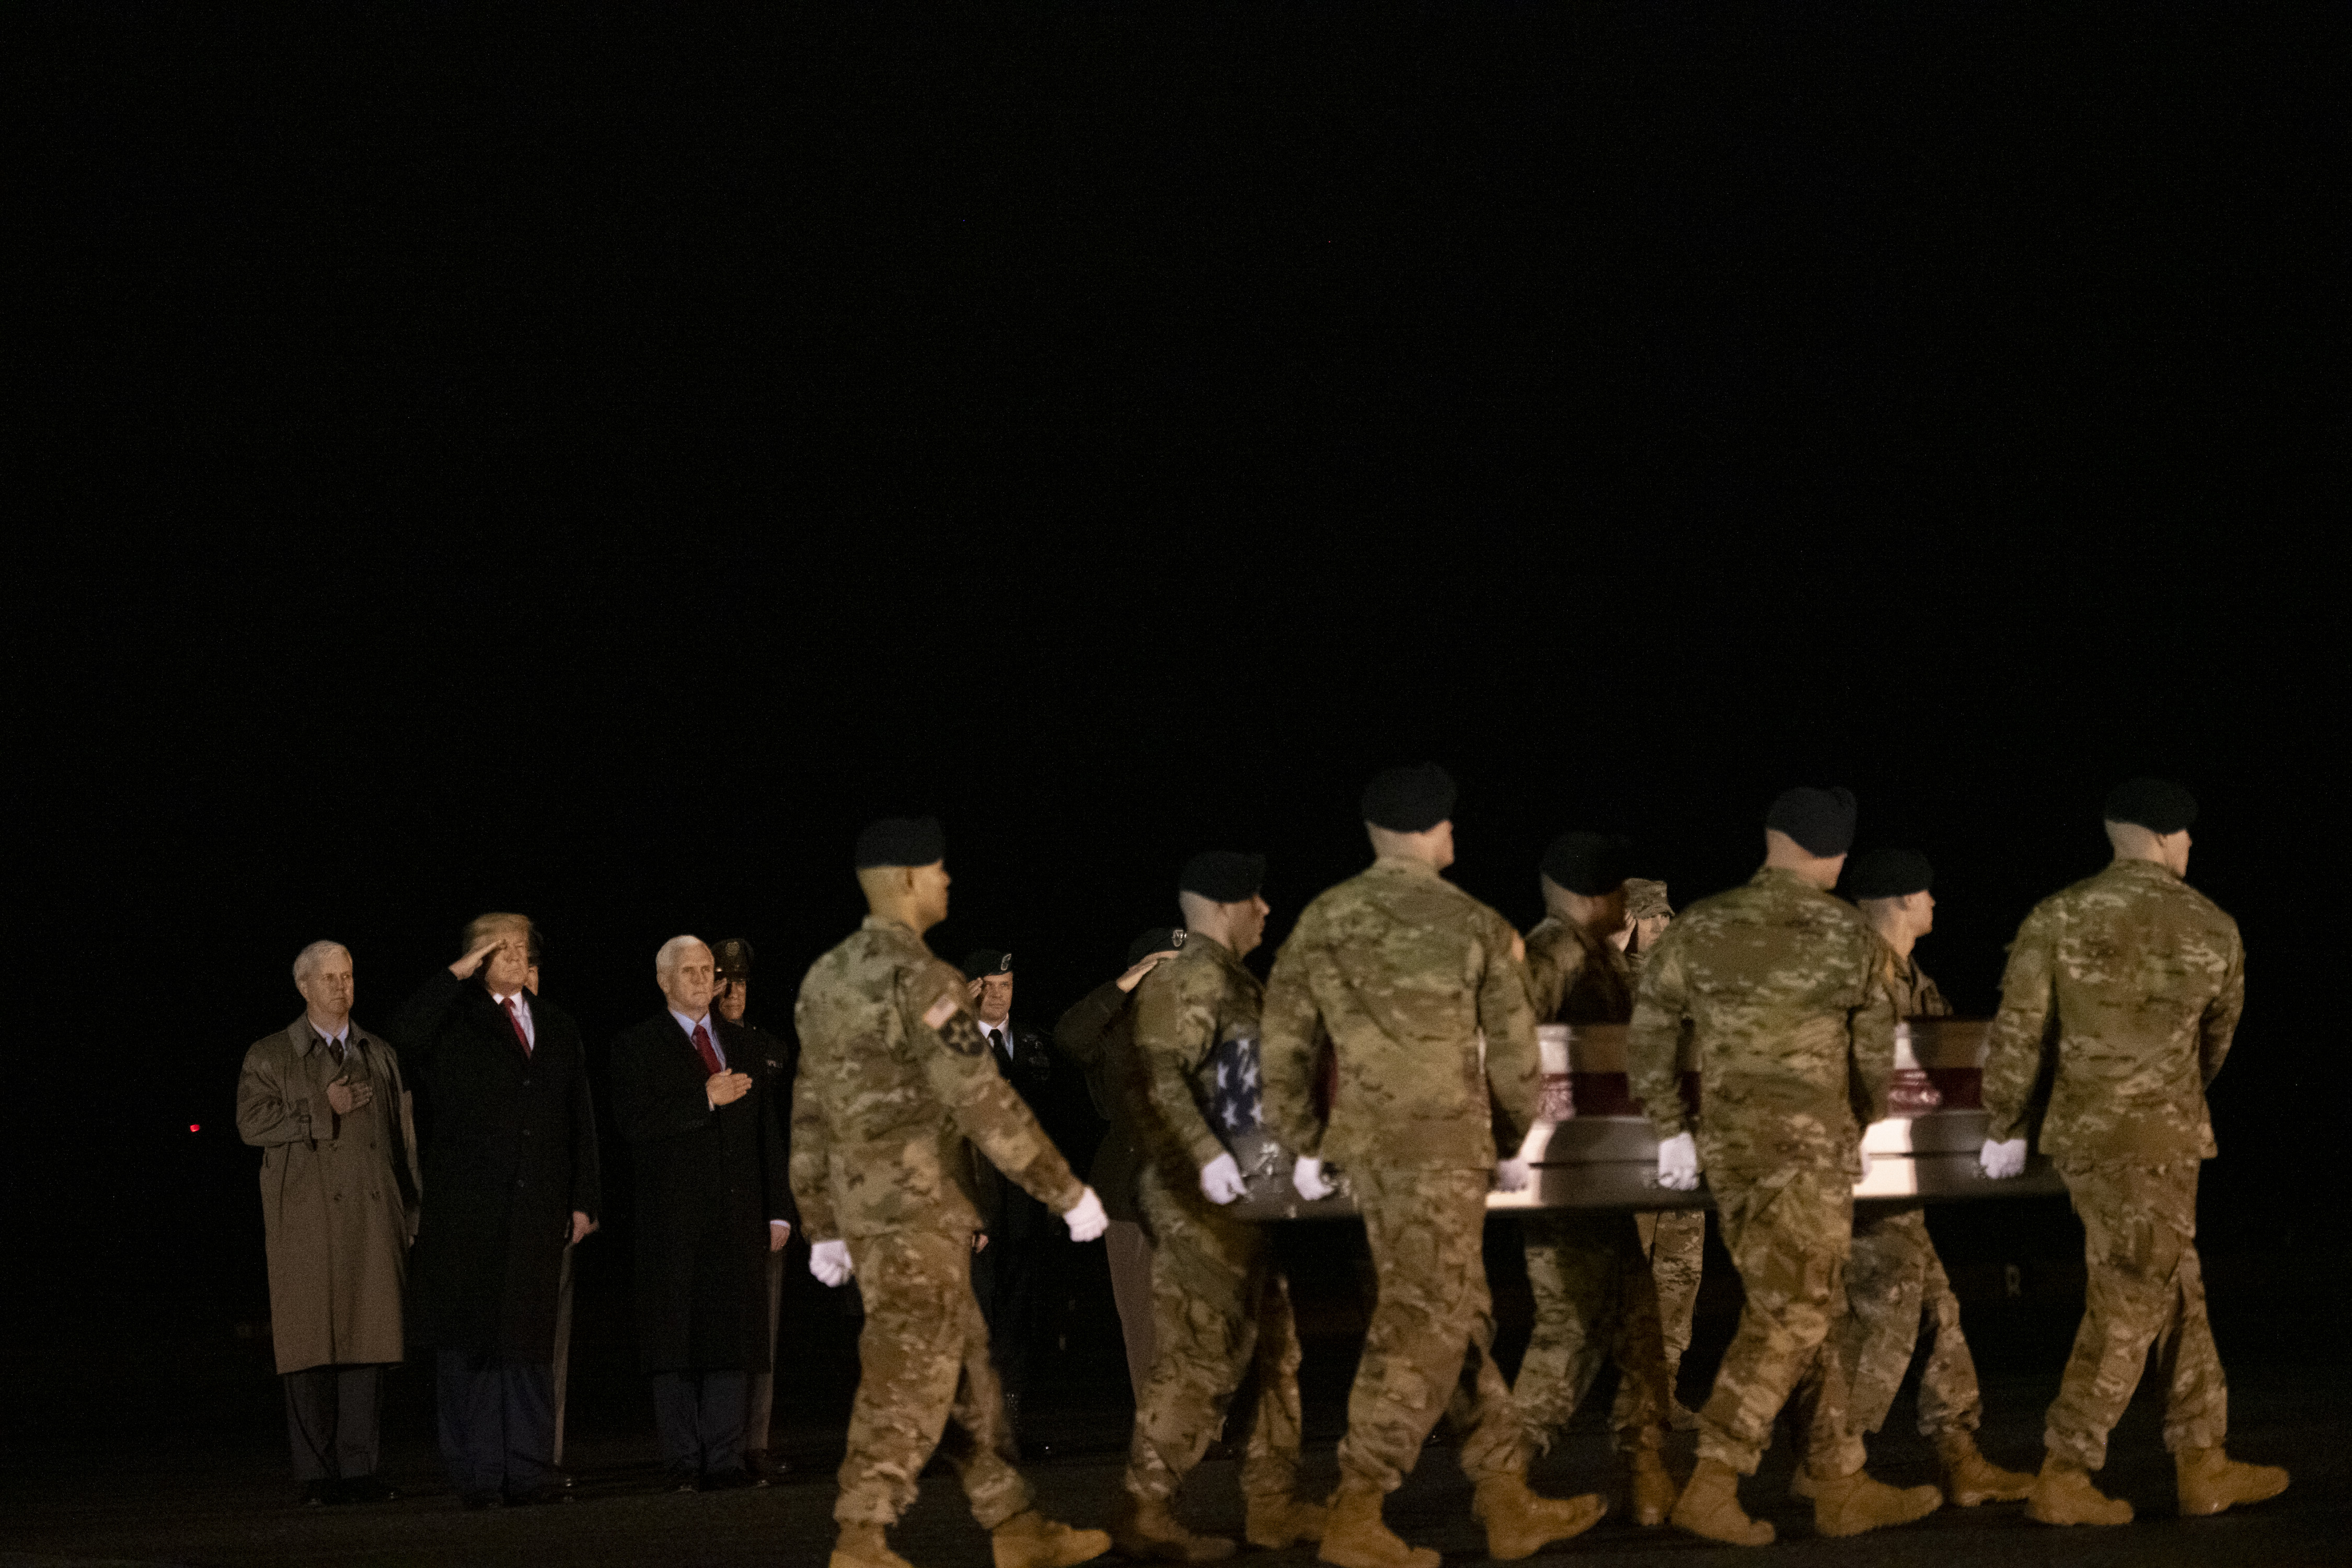 DOVER, DE - FEBRUARY 10: (L-R) U.S. President Donald J. Trump and Vice President Mike Pence watch as military personnel carry a transfer case for fallen service member, U.S. Army Sgt. 1st Class Javier J. Gutierrez, 28, during a dignified transfer at Dover Air Force Base on February 10, 2020 in Dover, Delaware. Gutierrez and U.S. Army Sgt. 1st Class Antonio R. Rodriguez were both killed in an attack in the Nangarhar province of Afghanistan on Saturday, according to a Department of Defense release. (Photo by Mark Makela/Getty Images)